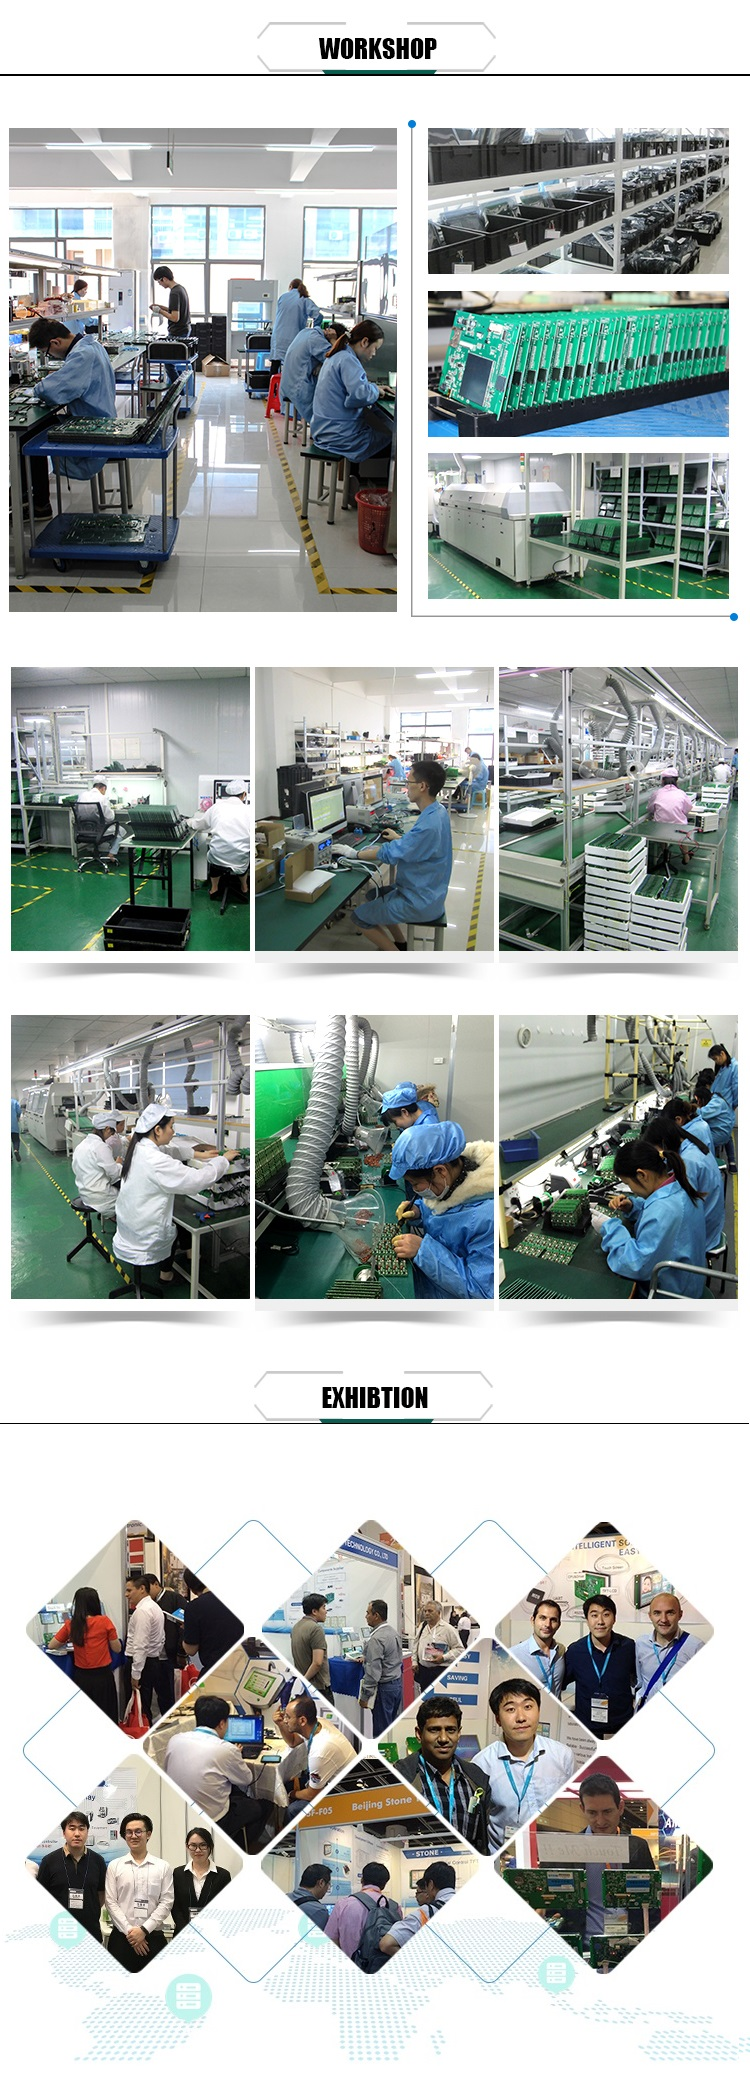 UART LCM 10.1 inch Touch Screen Panel with Smart Controller for Industrial Use